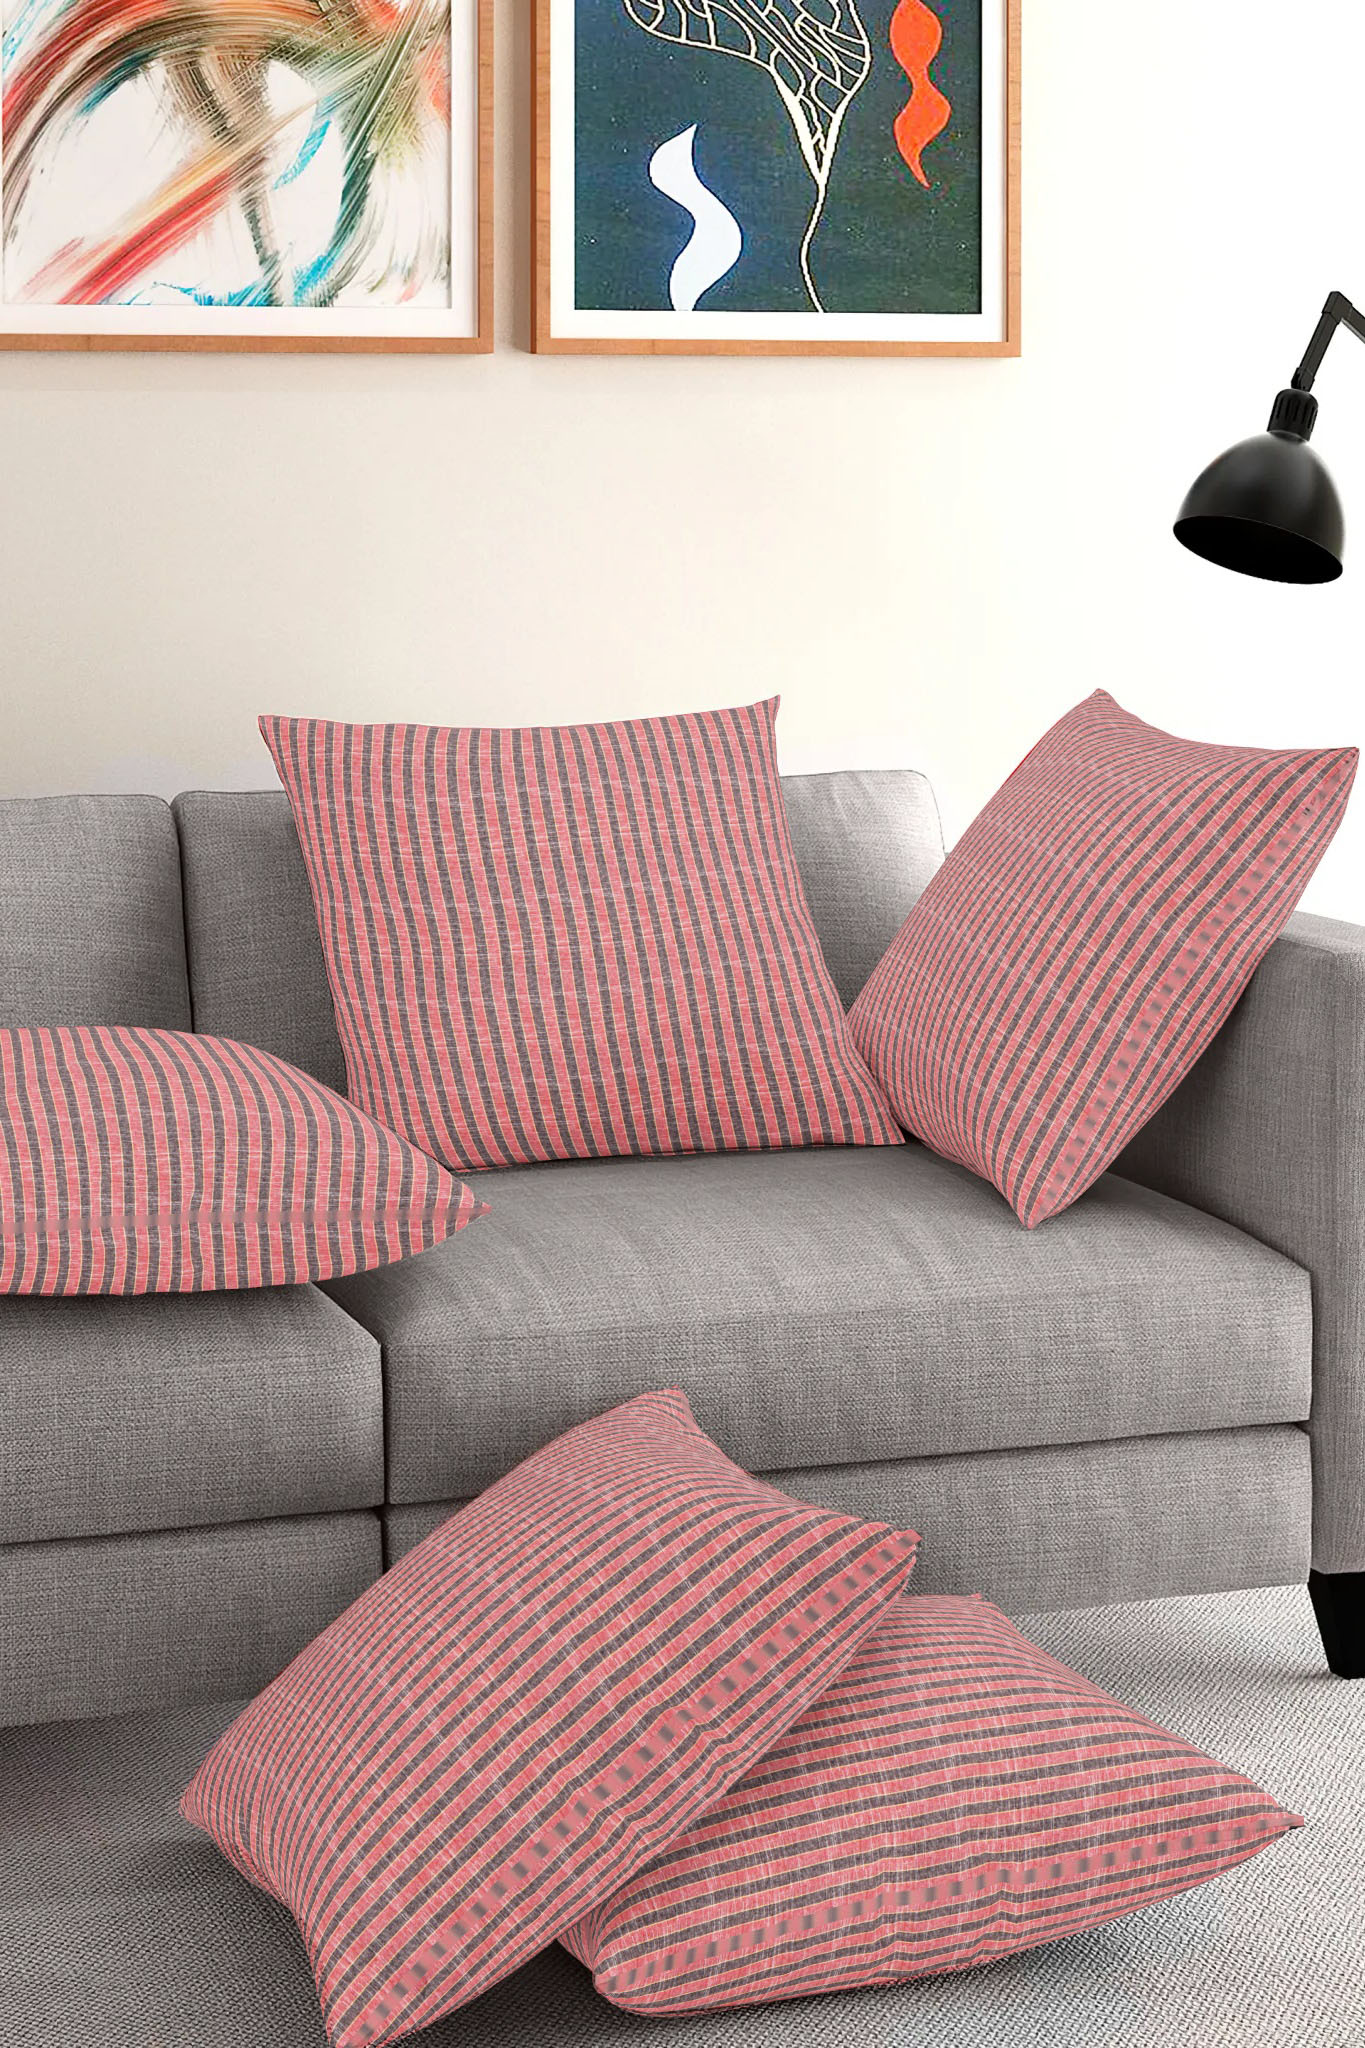 Set of 5-Pink Gray Cotton Cushion Cover-35394-16x16 Inches